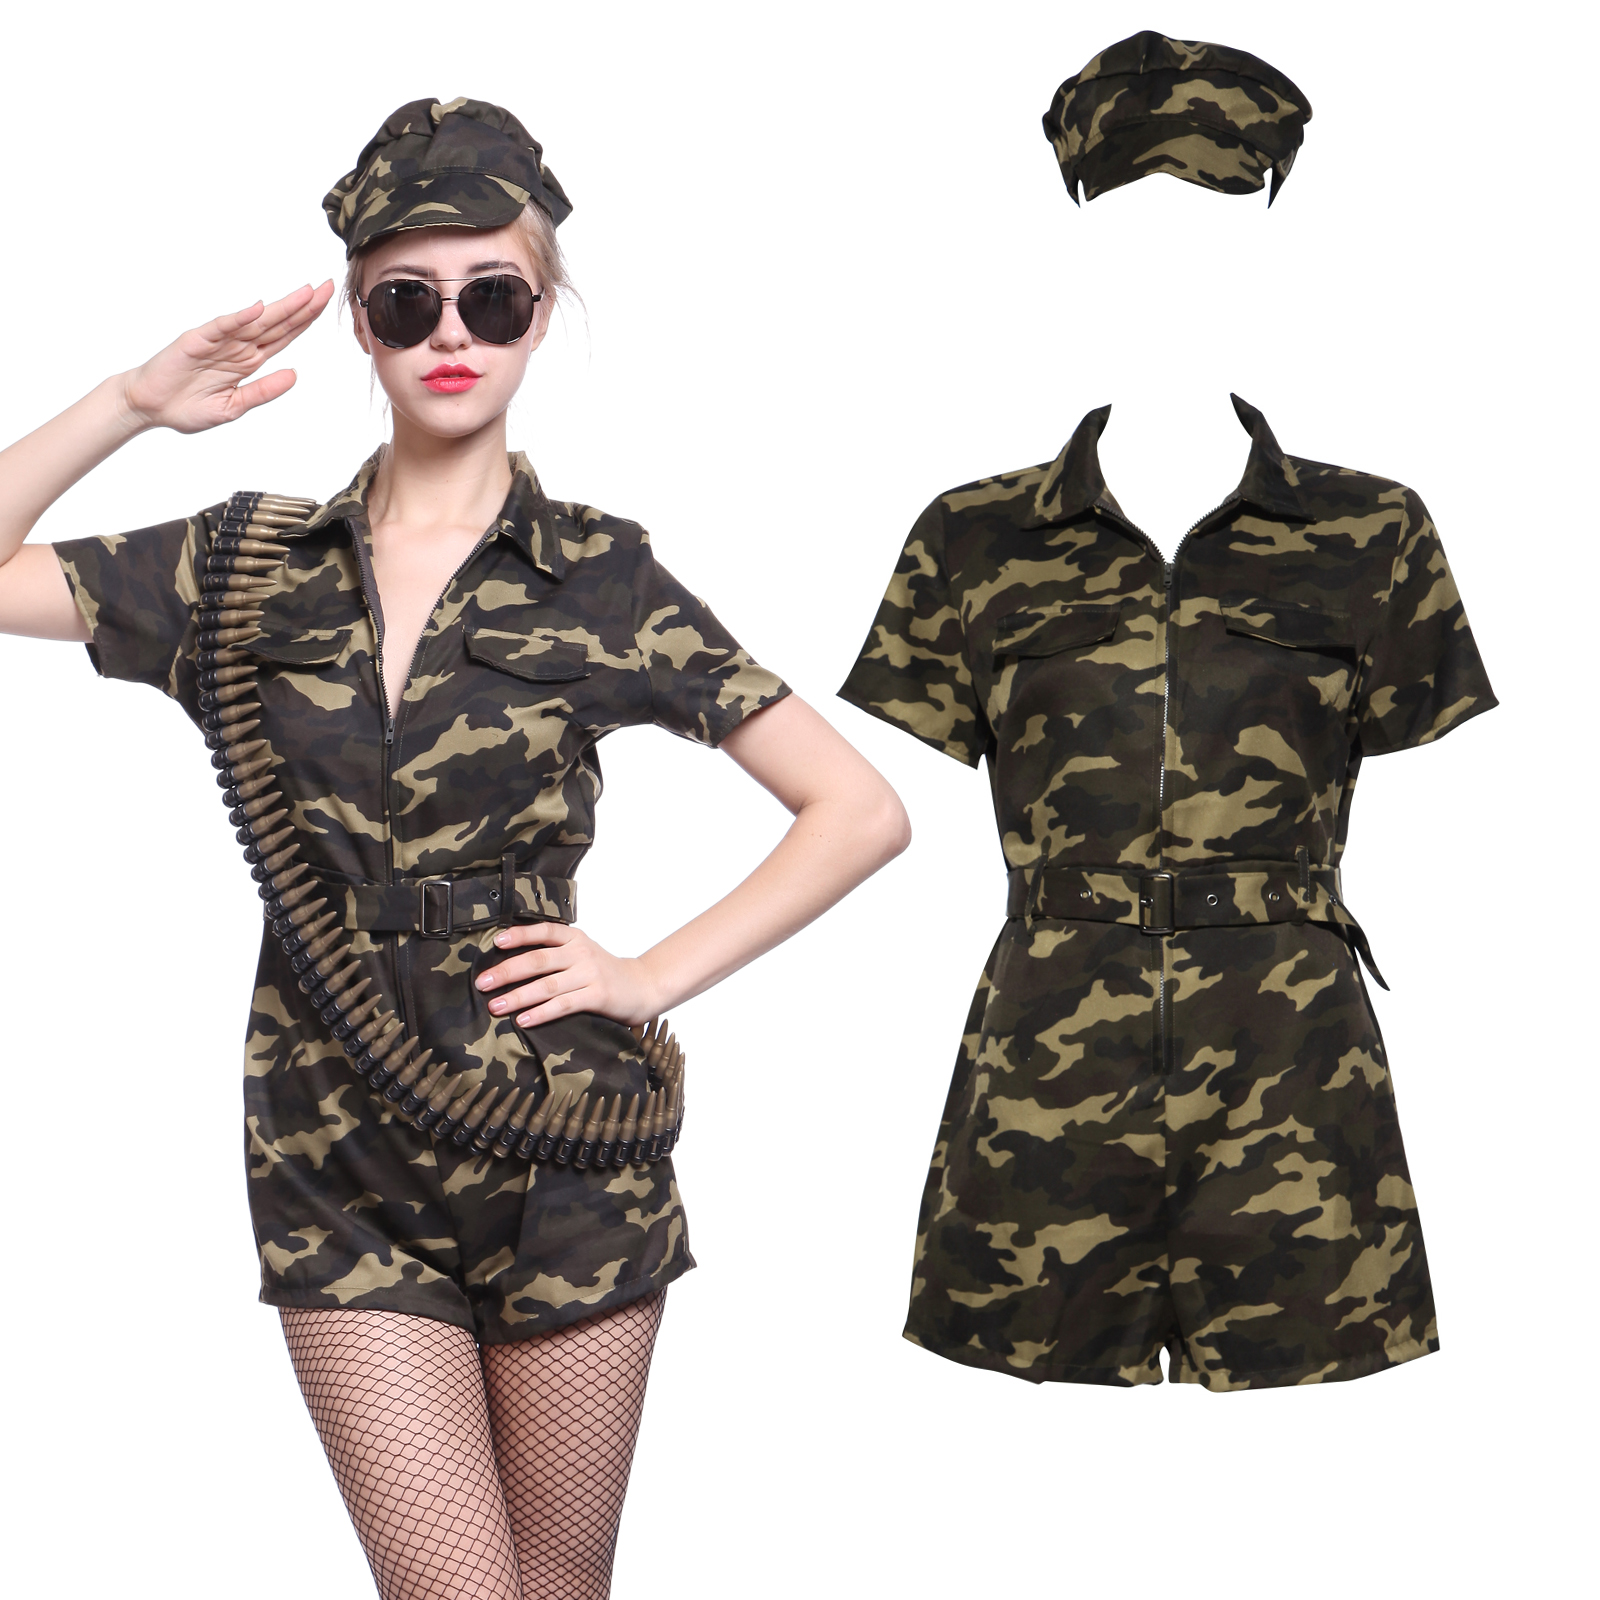 usa armee damen kost m tarnfarbe milit r camouflage uniform hosenanzug cosplay ebay. Black Bedroom Furniture Sets. Home Design Ideas